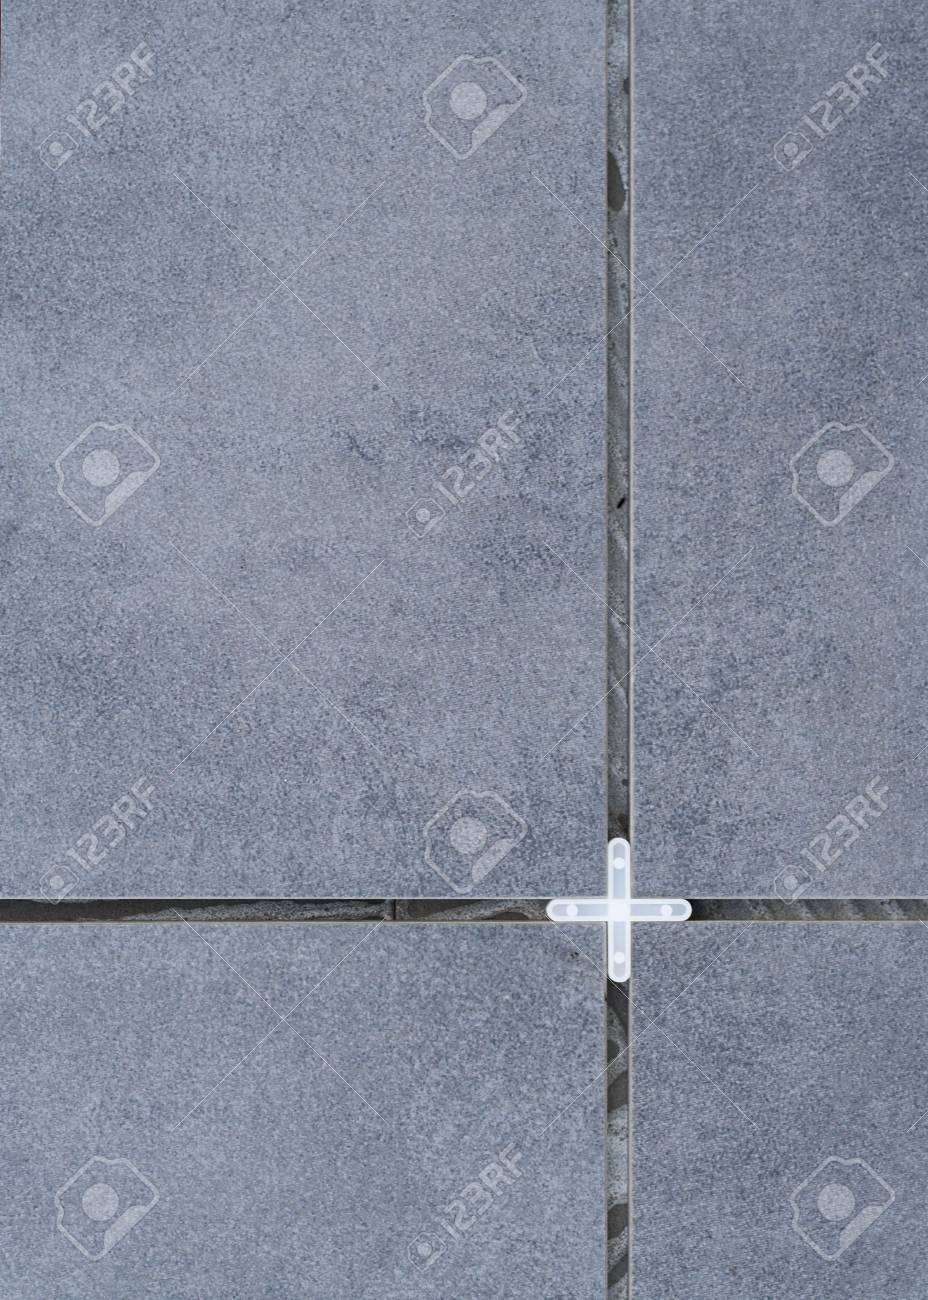 Tiles and Plastic Spacer Stock Photo - 2190380